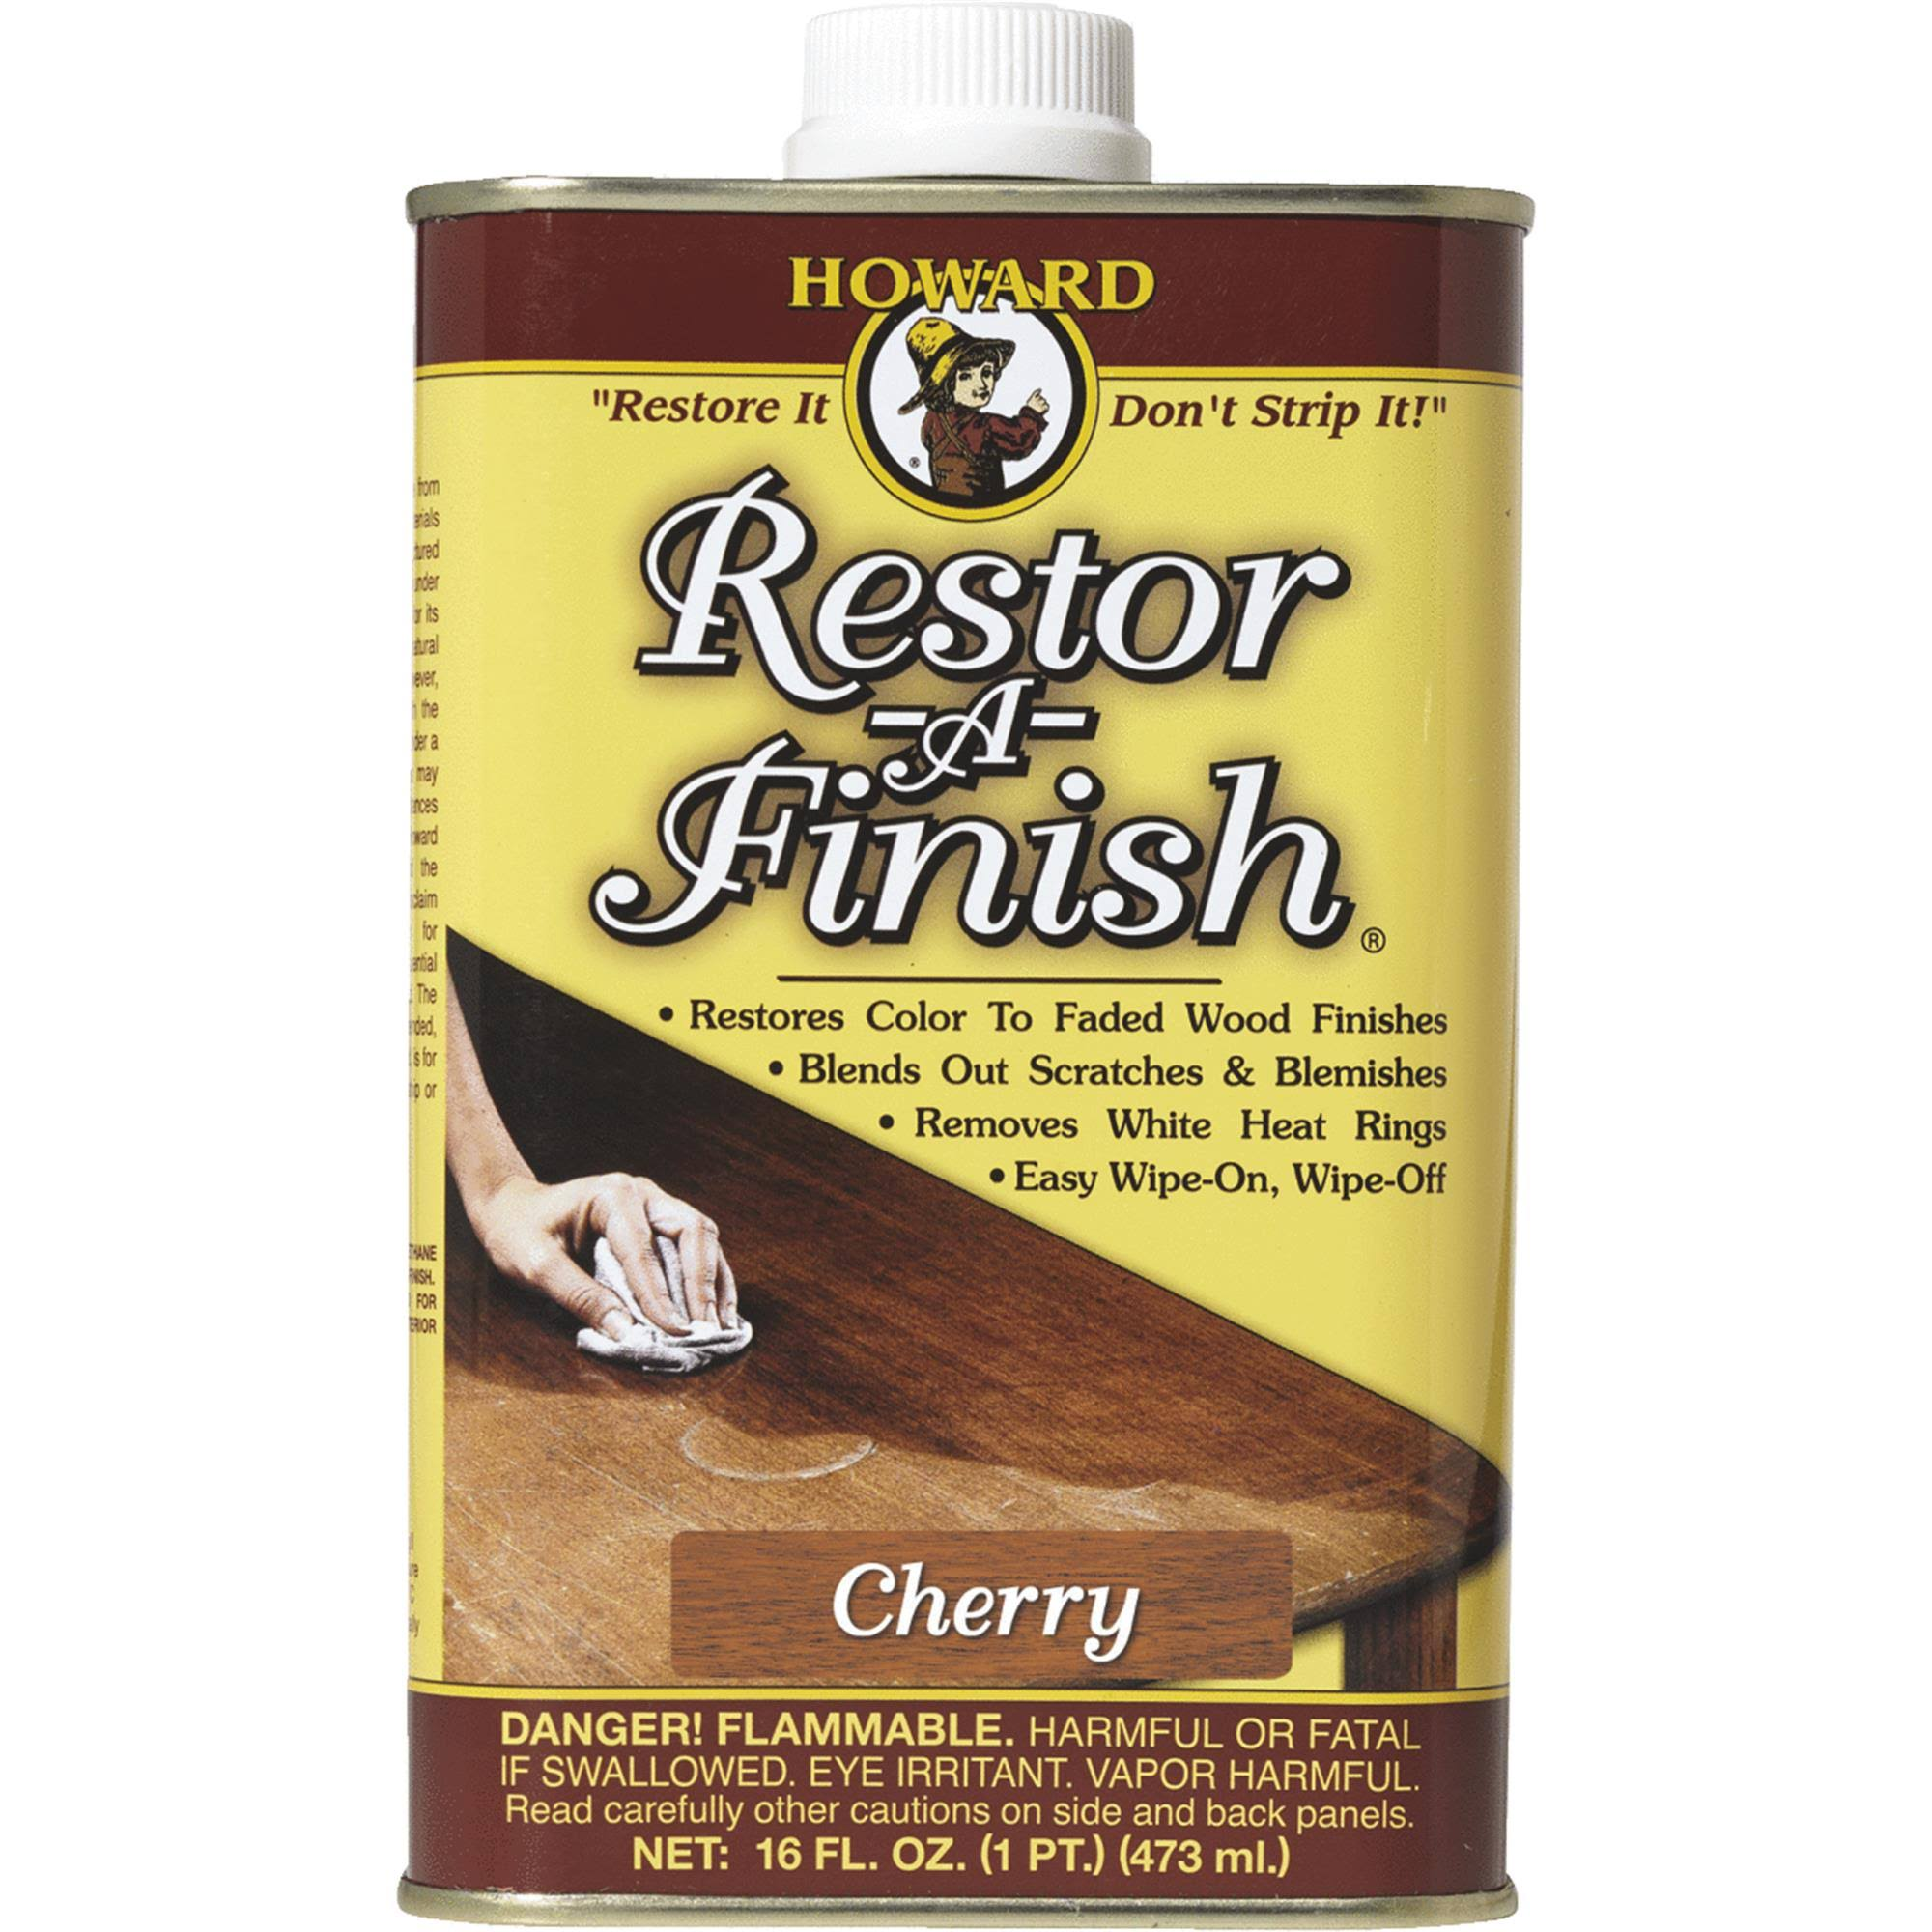 Howard Products Restor-A-Finish - Cherry, 16oz